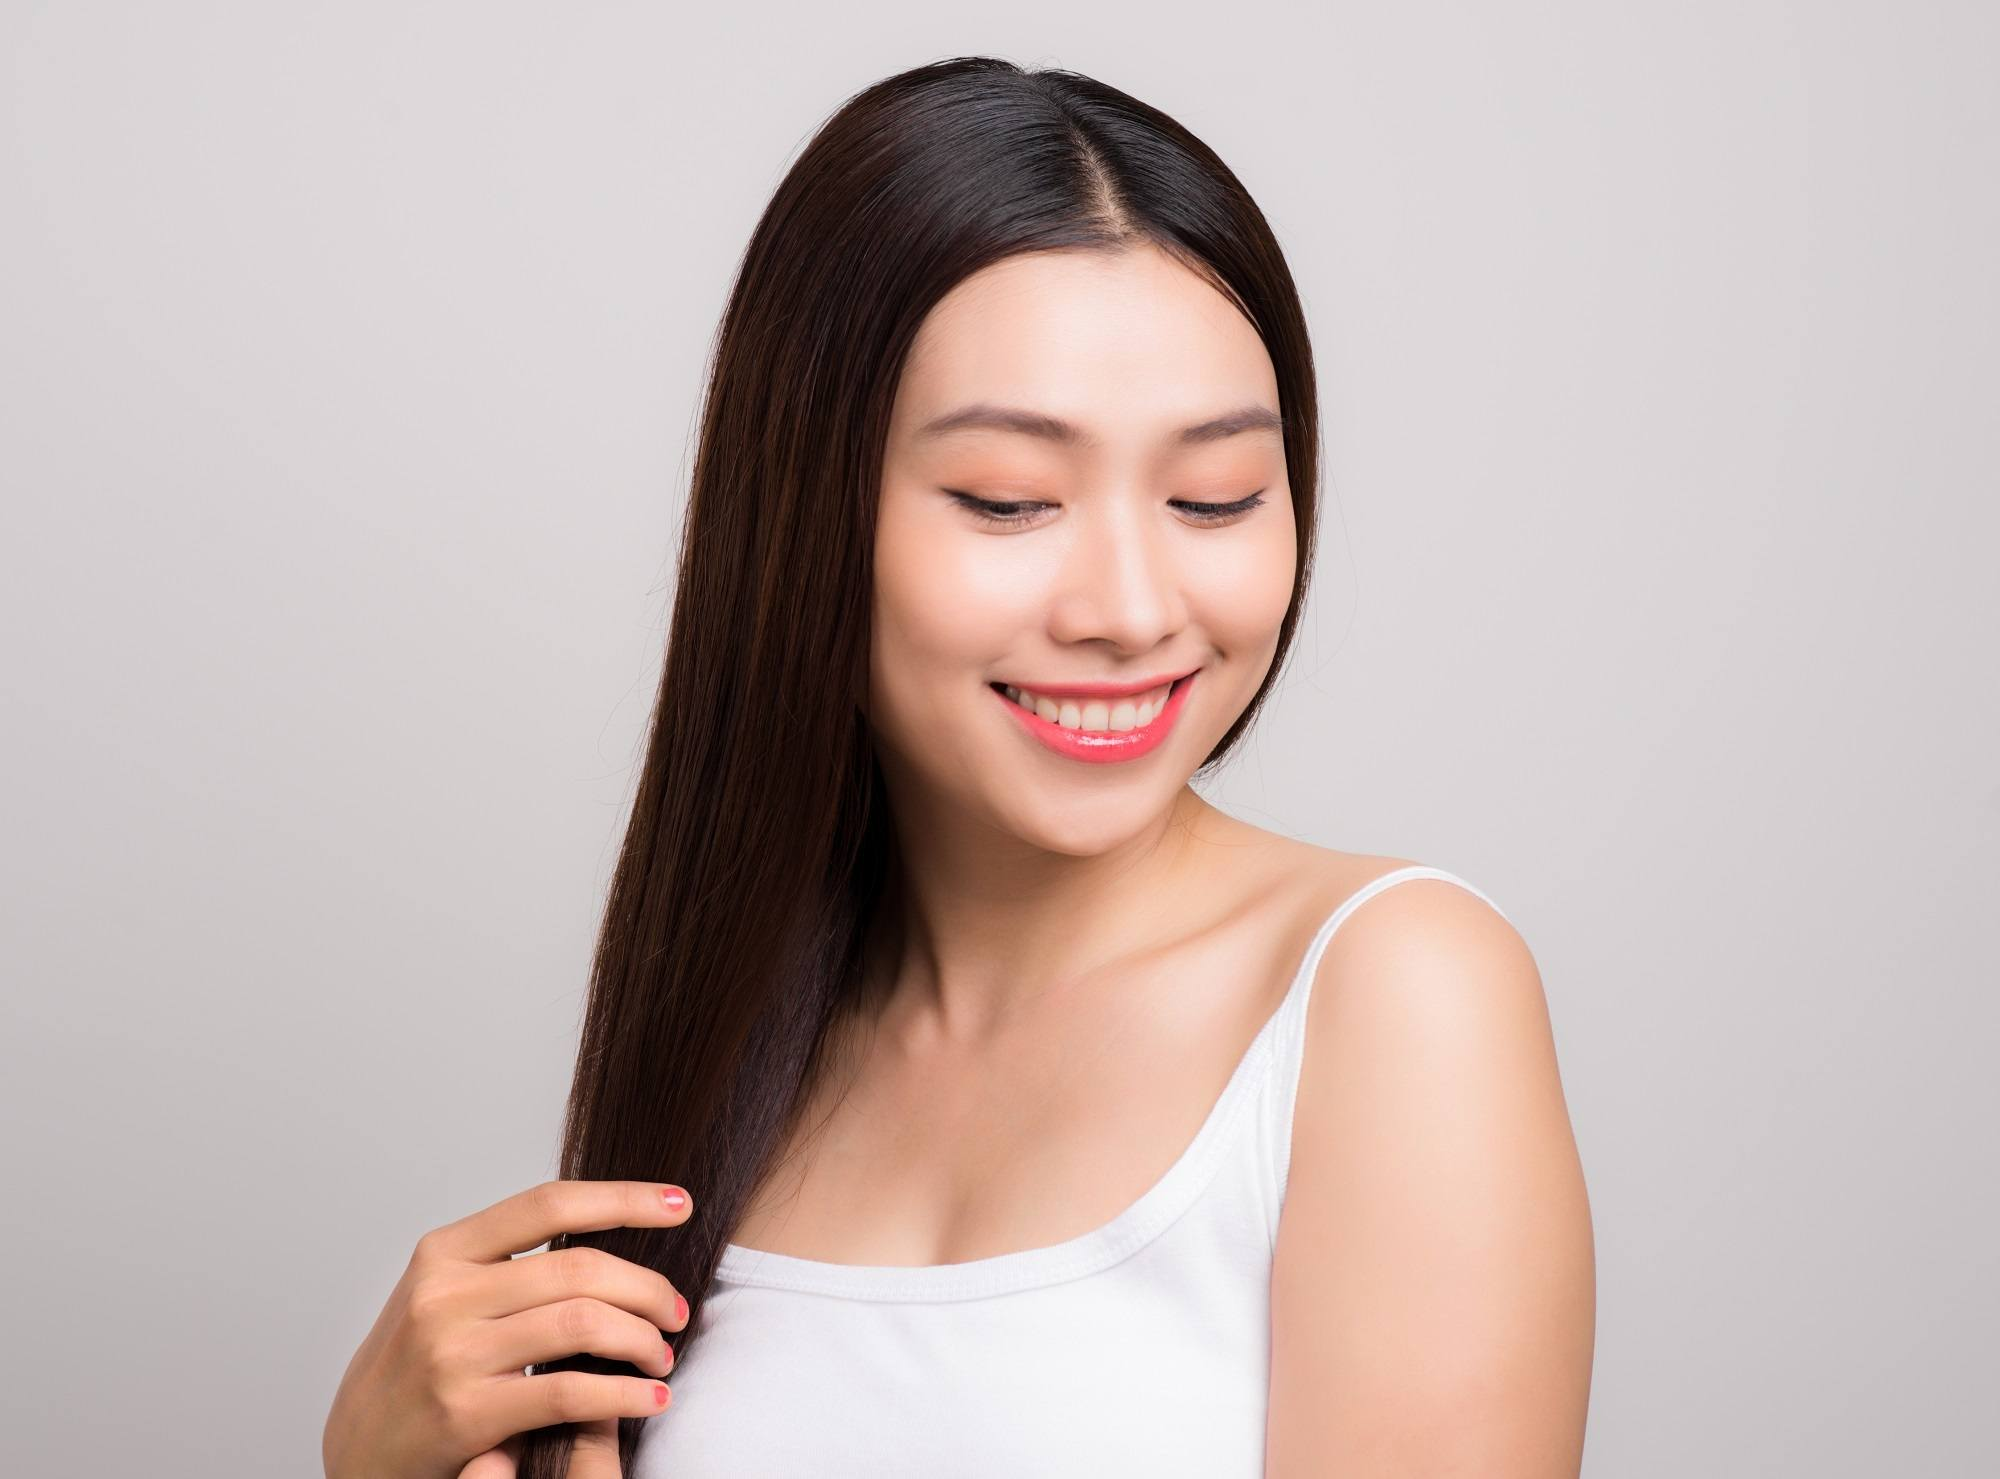 Hair care tips for traveling: Woman touching her long black straight hair wearing a white tank top against a gray background